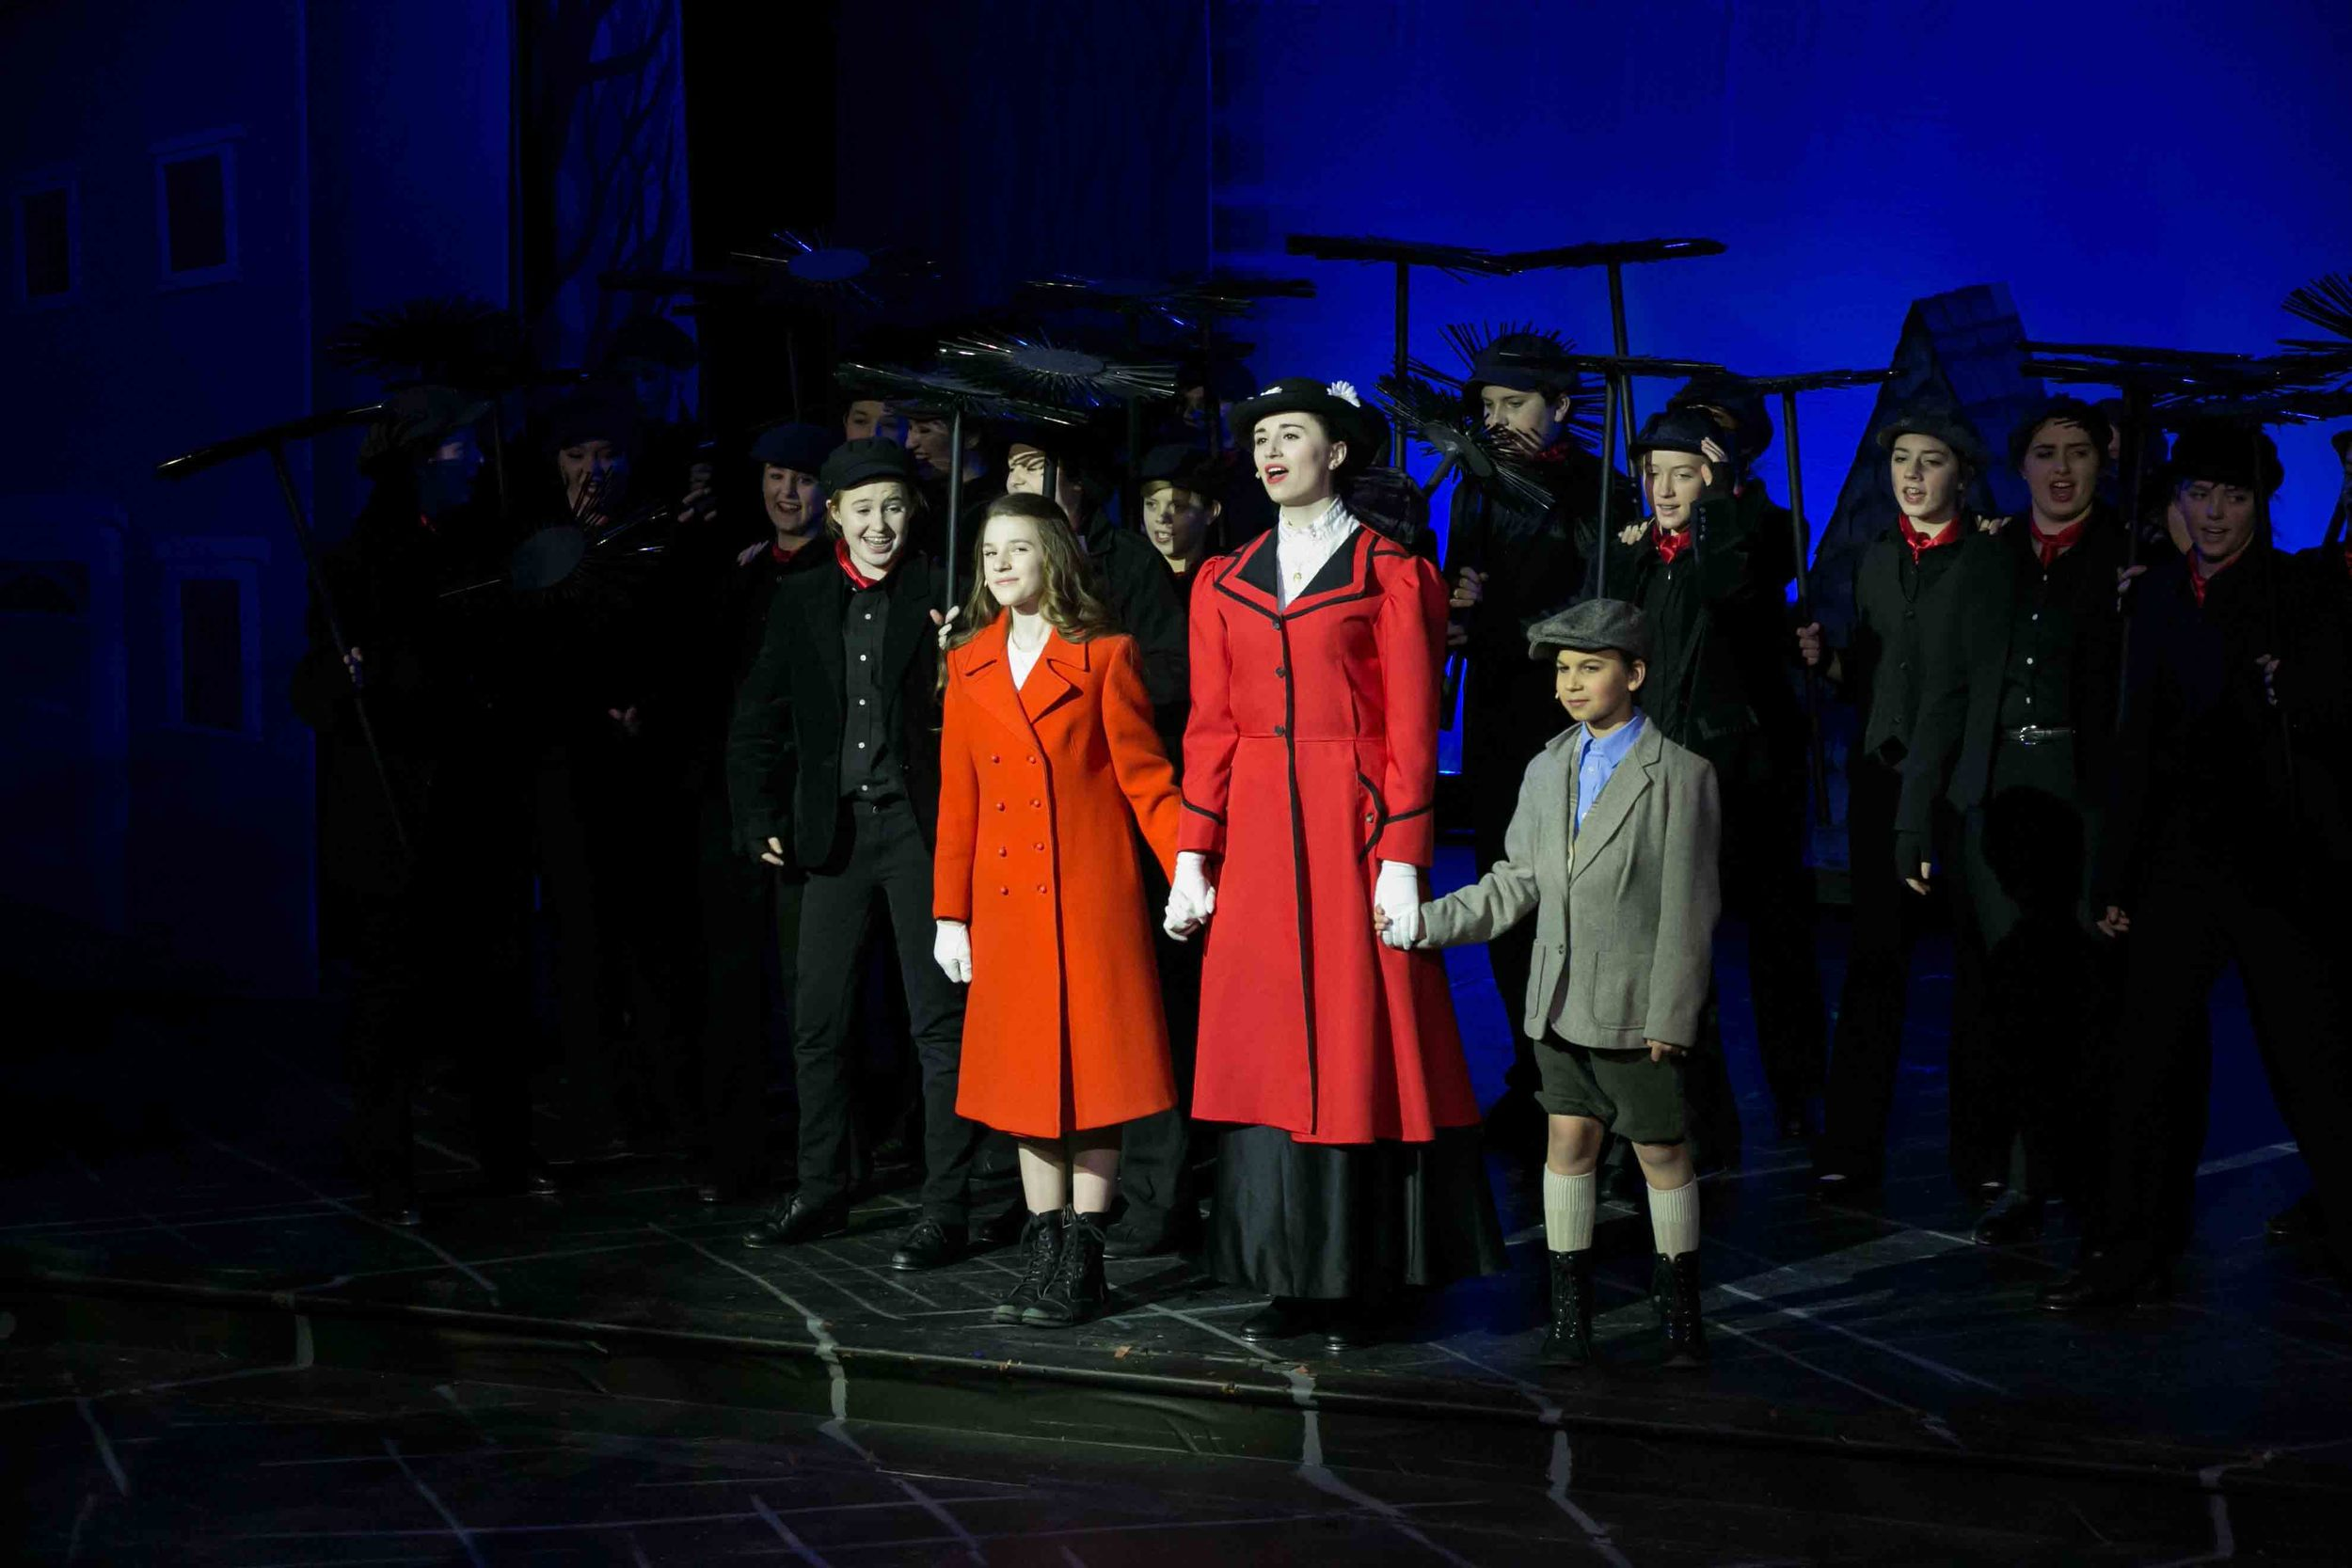 2-7-16 Mary Poppins Prim Cast 0392.jpg